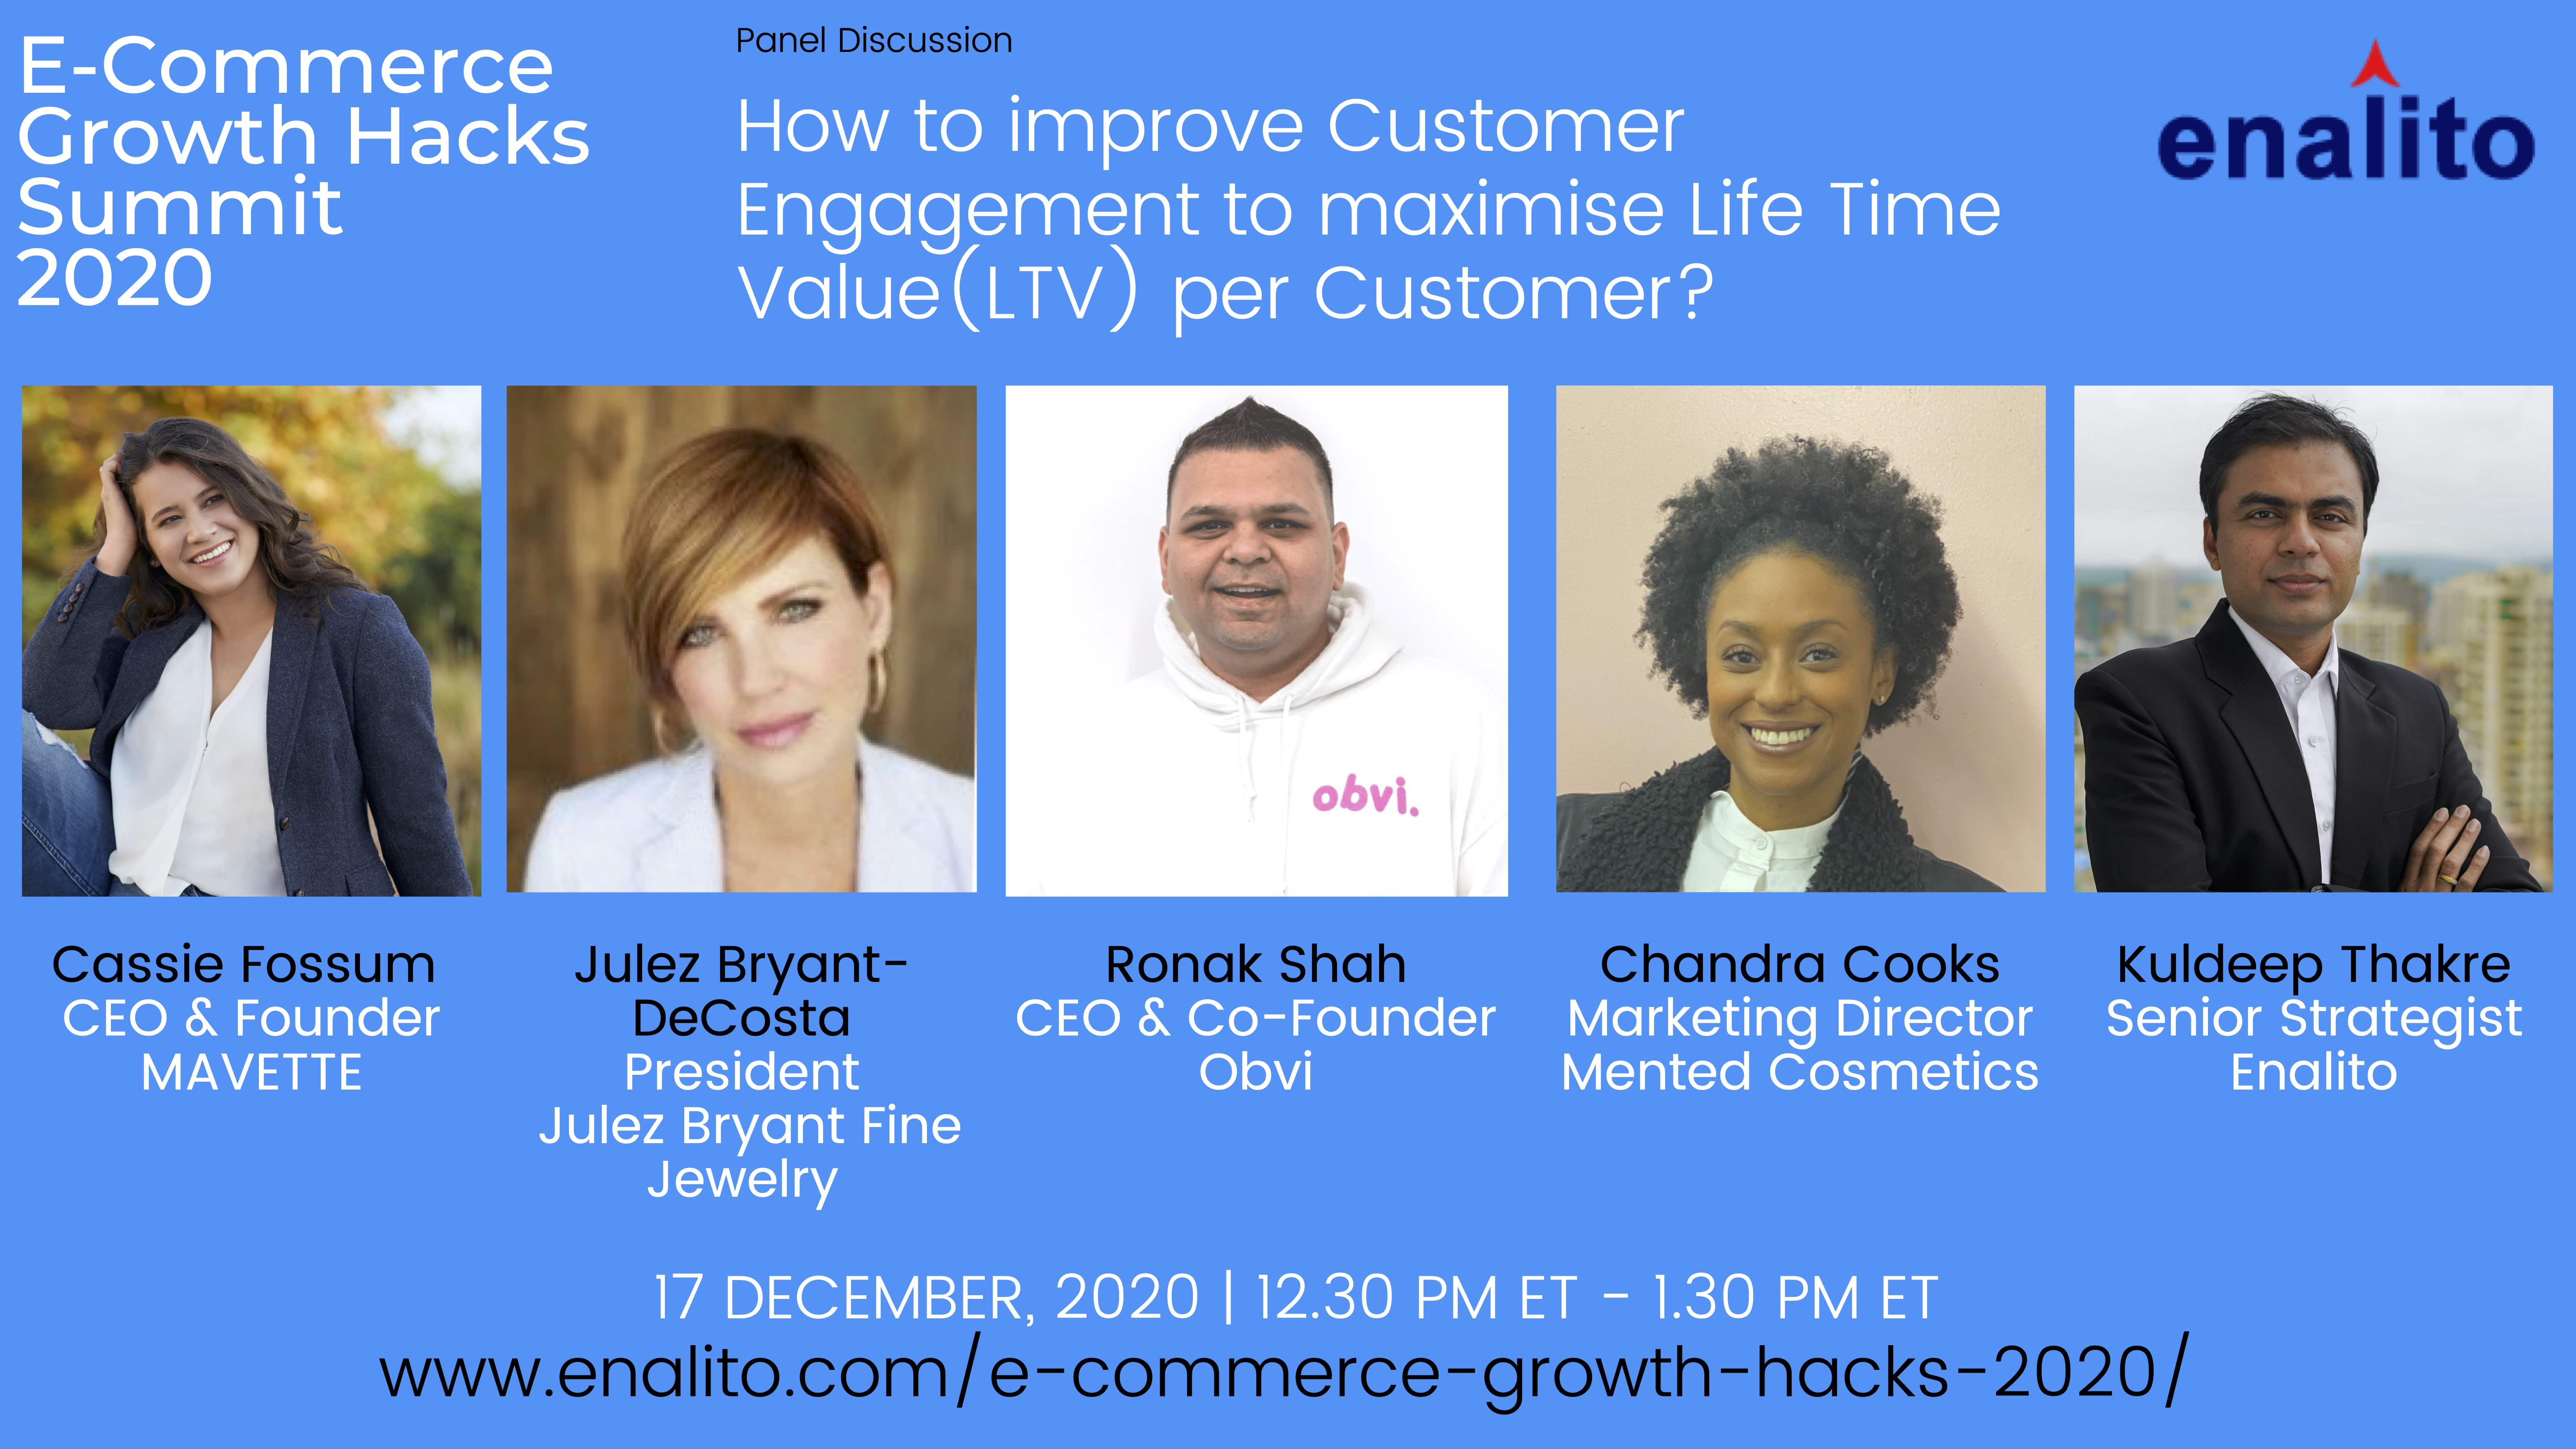 Lifecycle Customer Engagement to maximise Life Time Value(LTV)